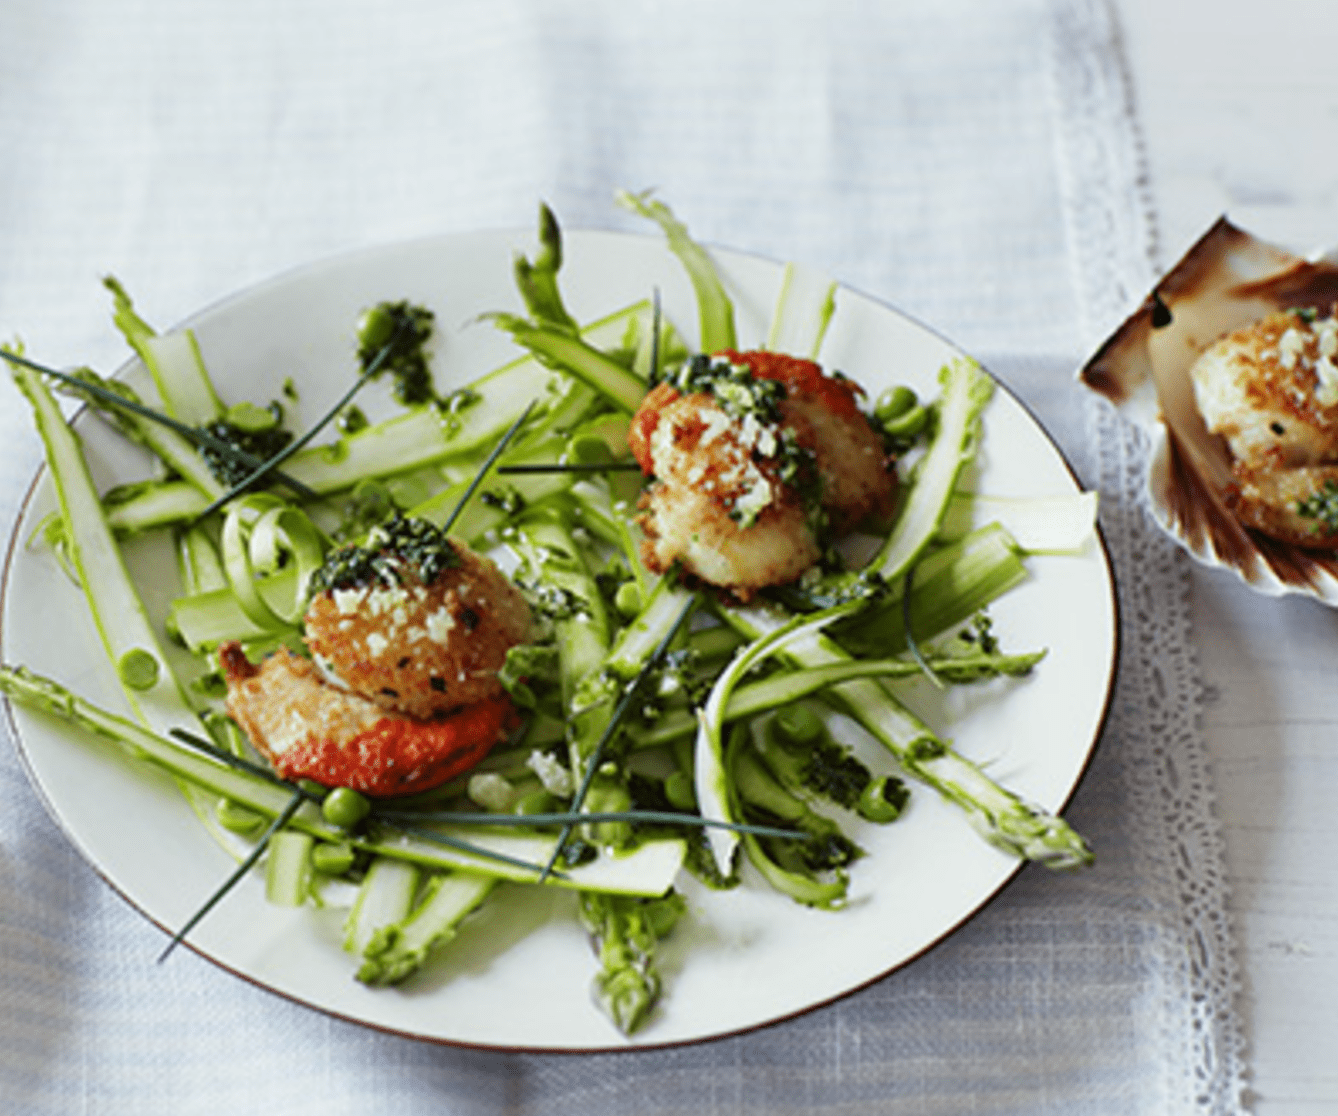 Scallops and Asparagus with Grana Padano - Bosa Foods